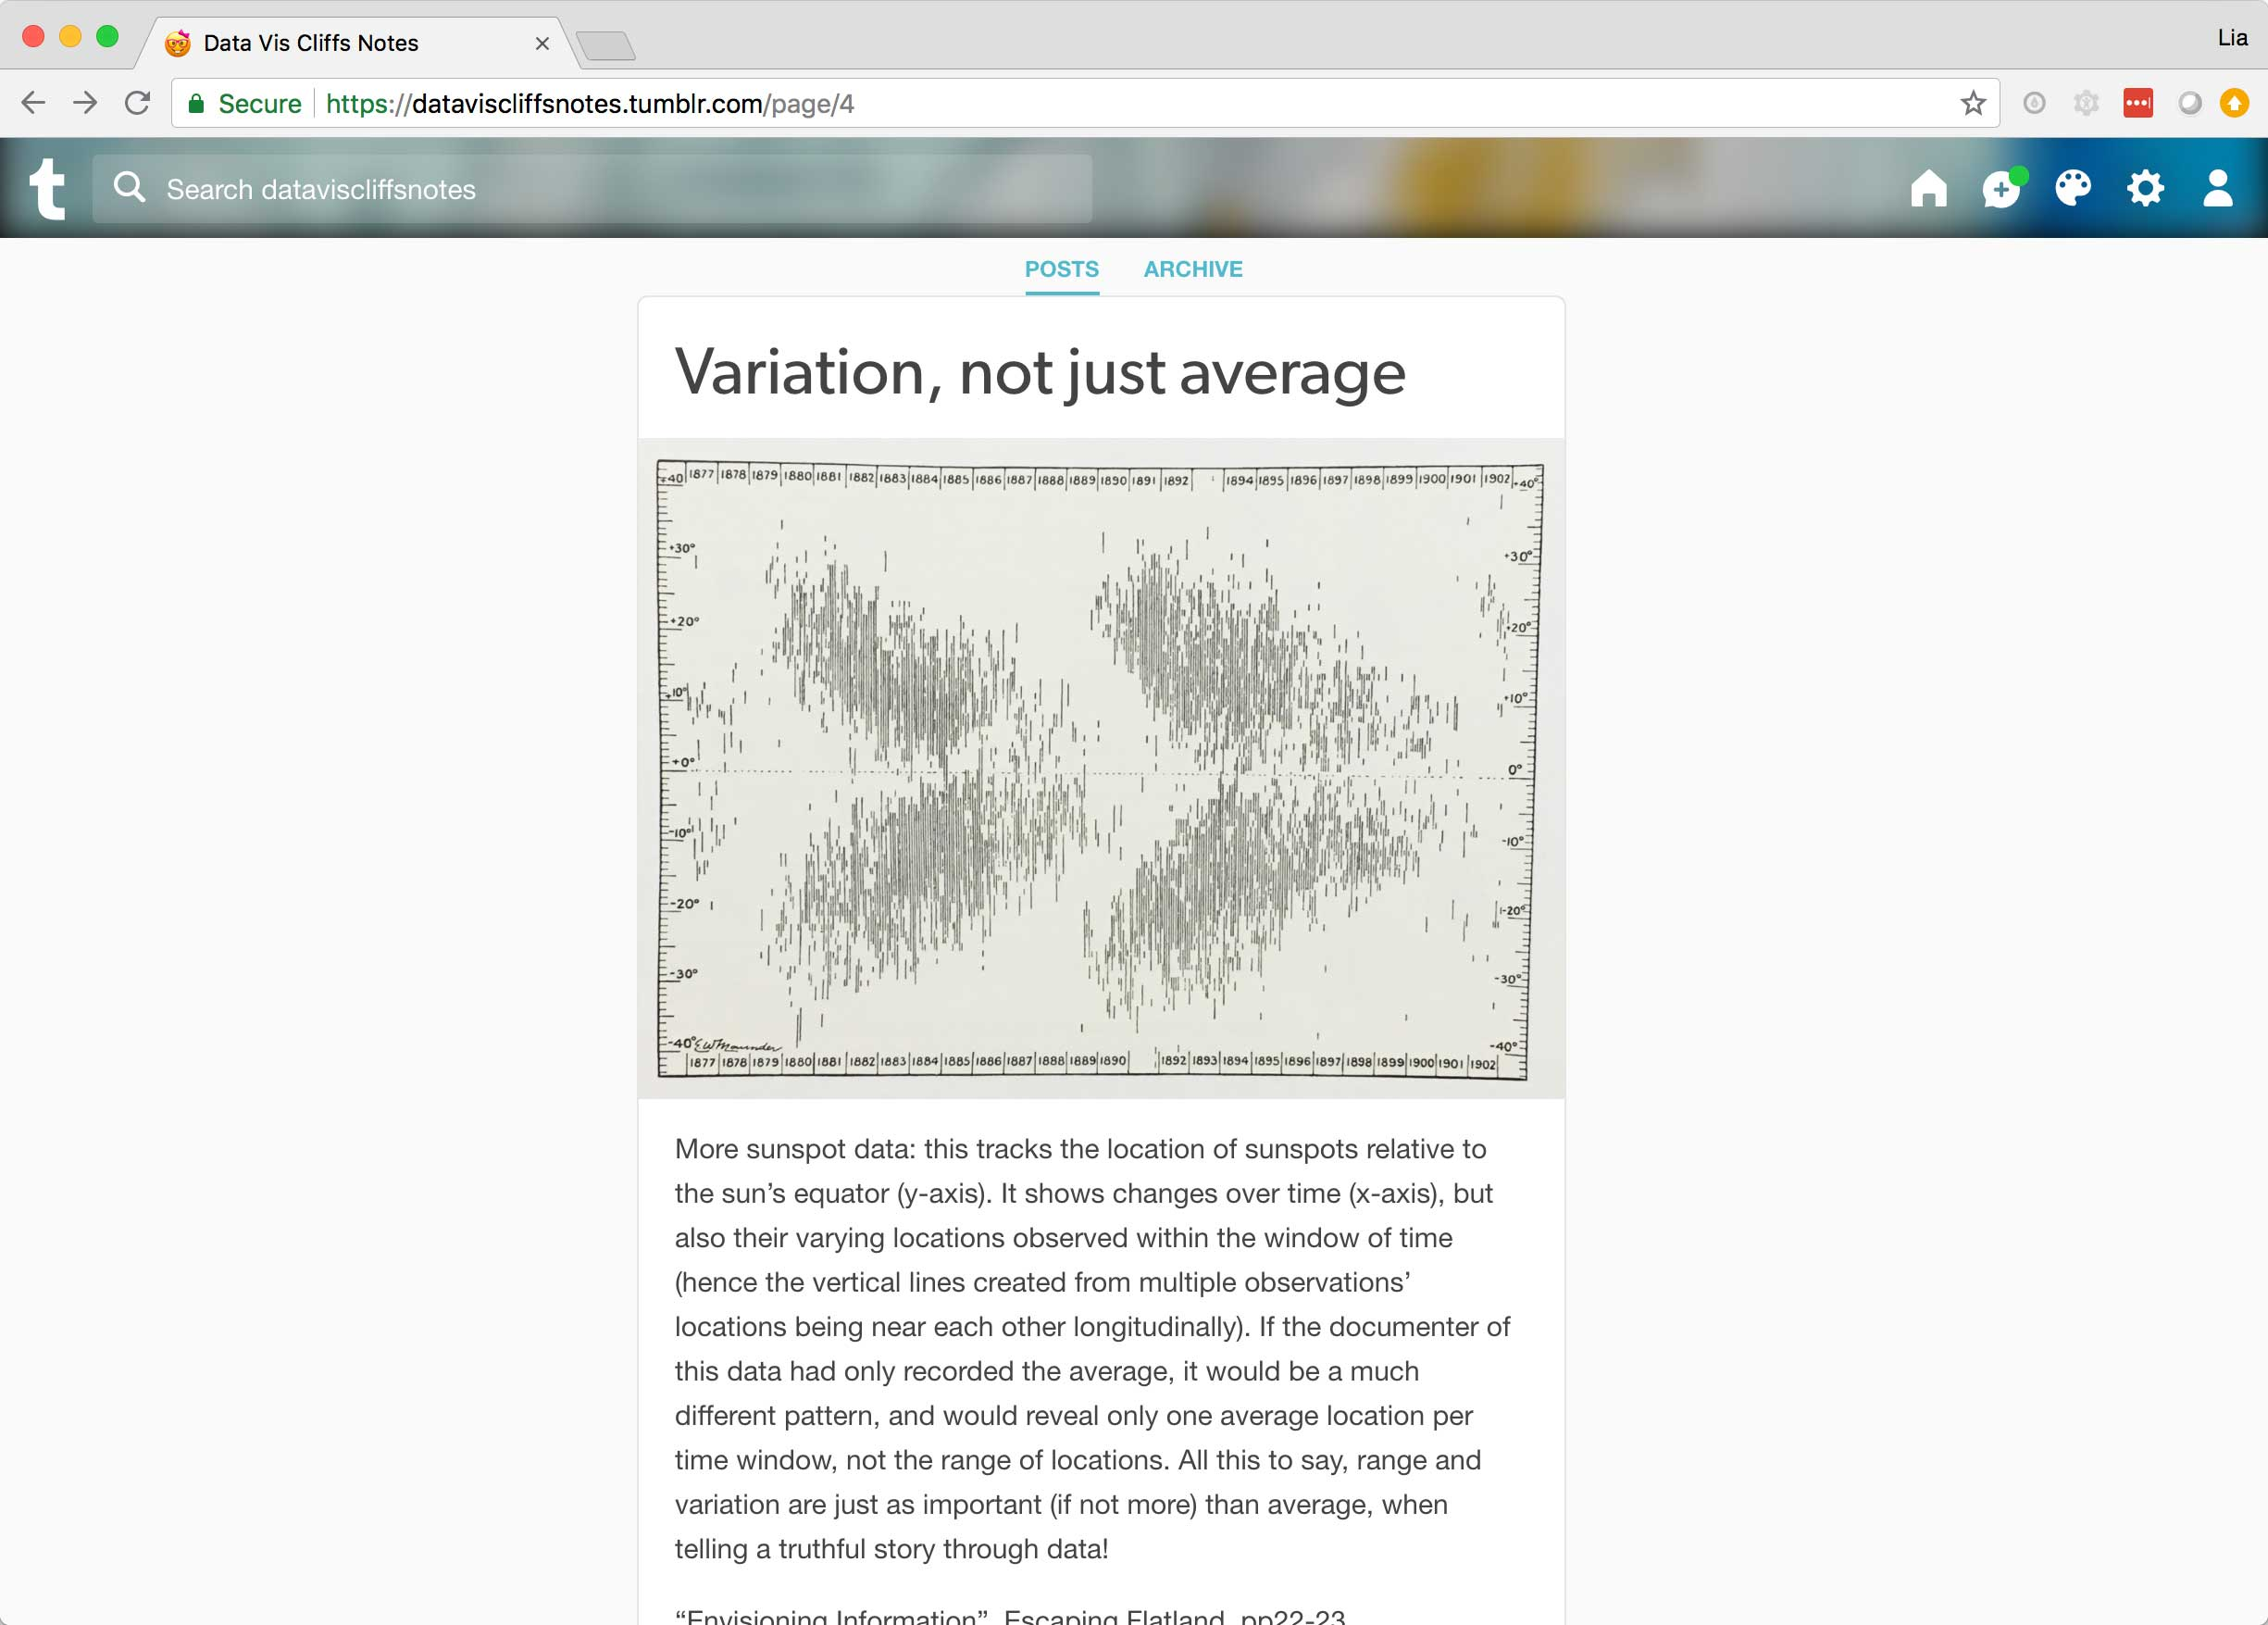 An example post from my Tumblr, about the importance of showing variation in data, not just averages.